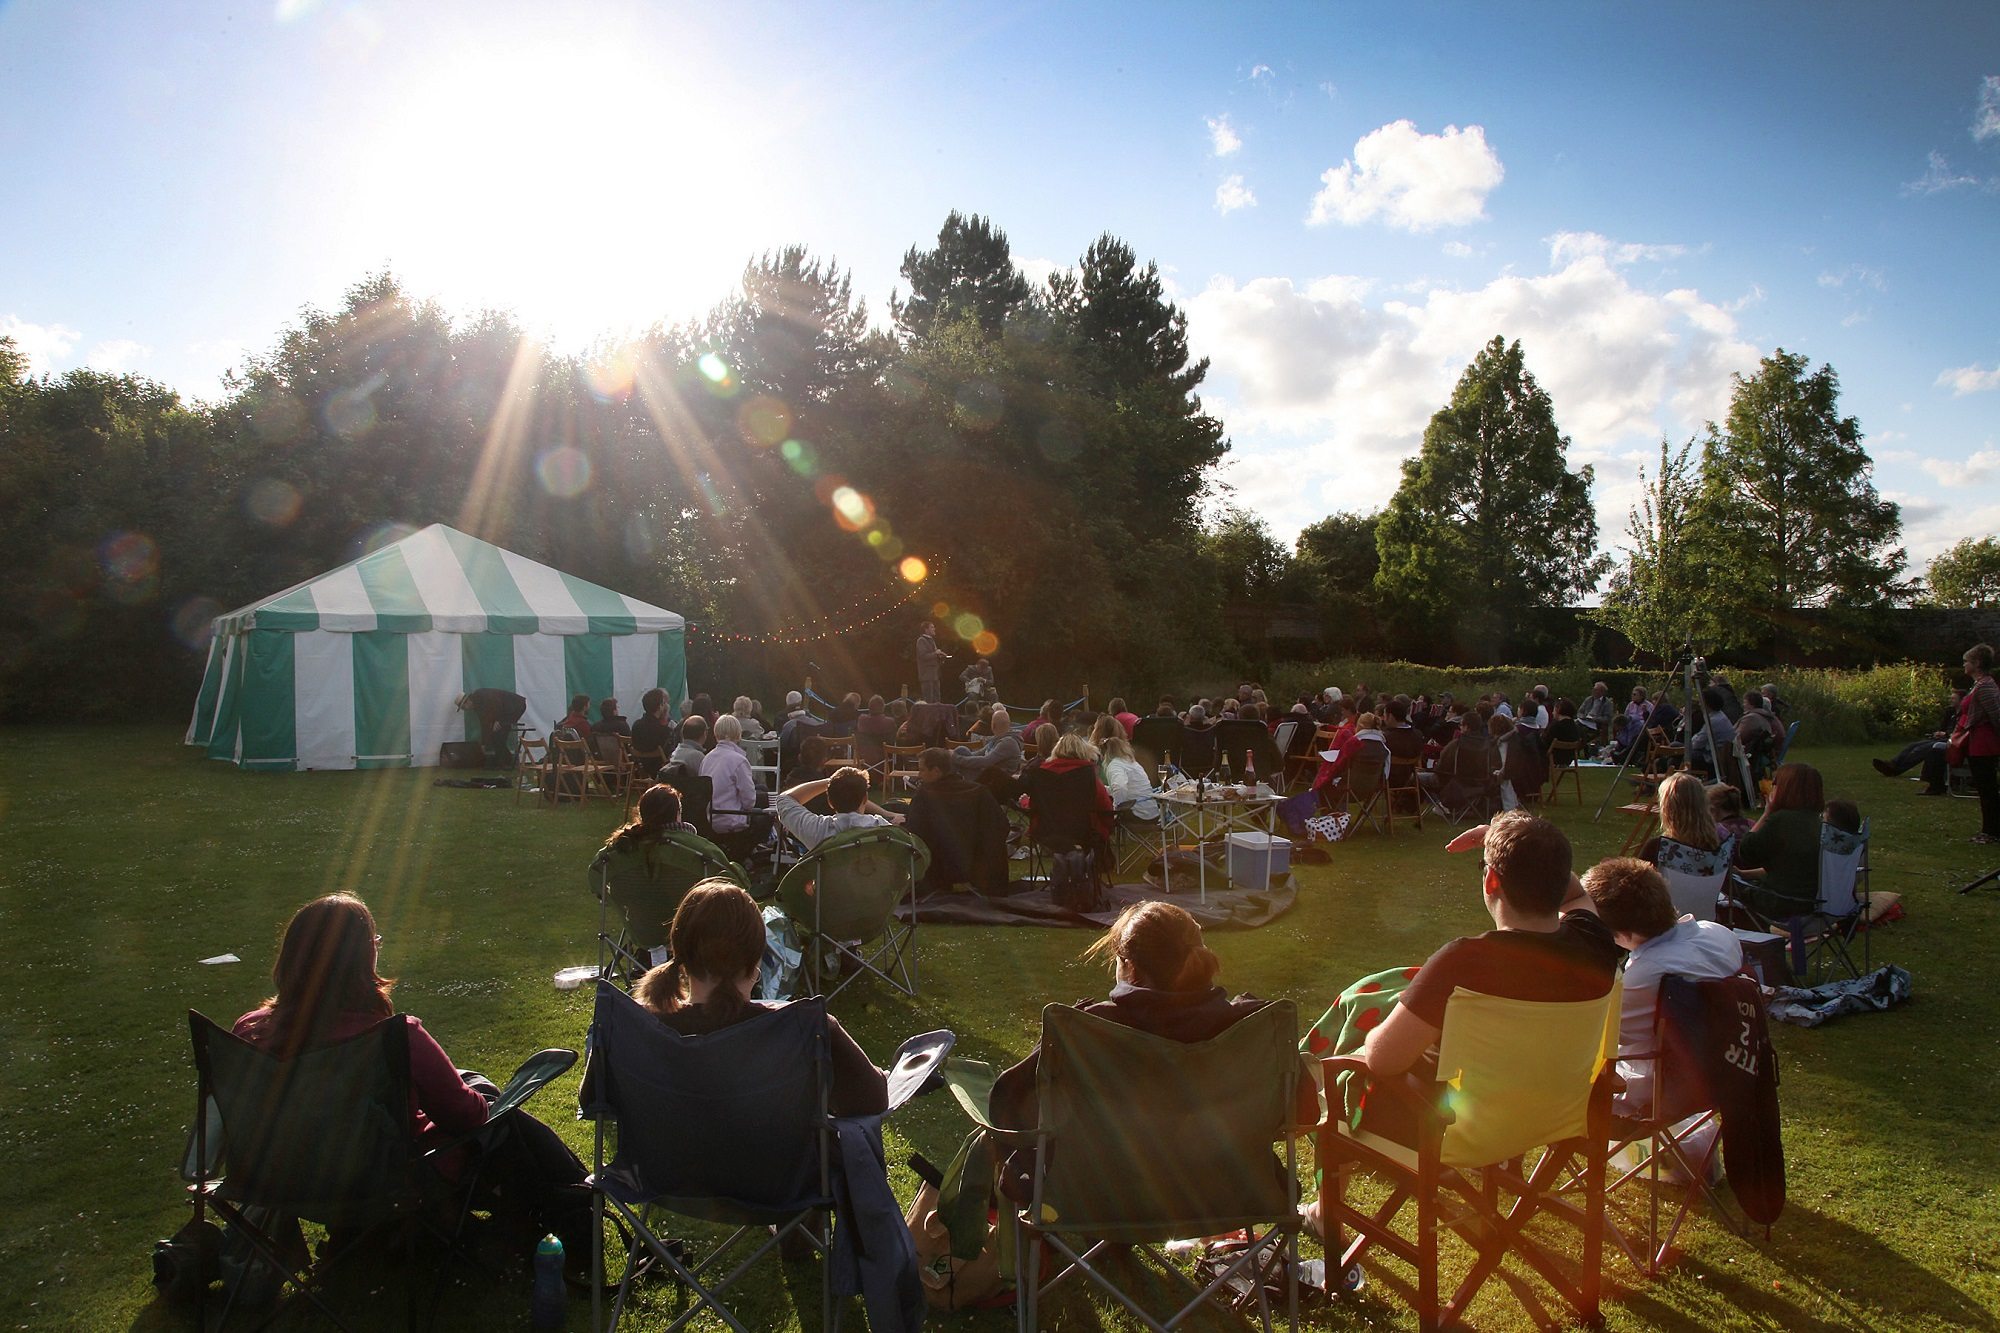 https://www.basingstokefestival.co.uk/wp-content/uploads/2019/03/Much-ado-about-nothing-smaller.jpg